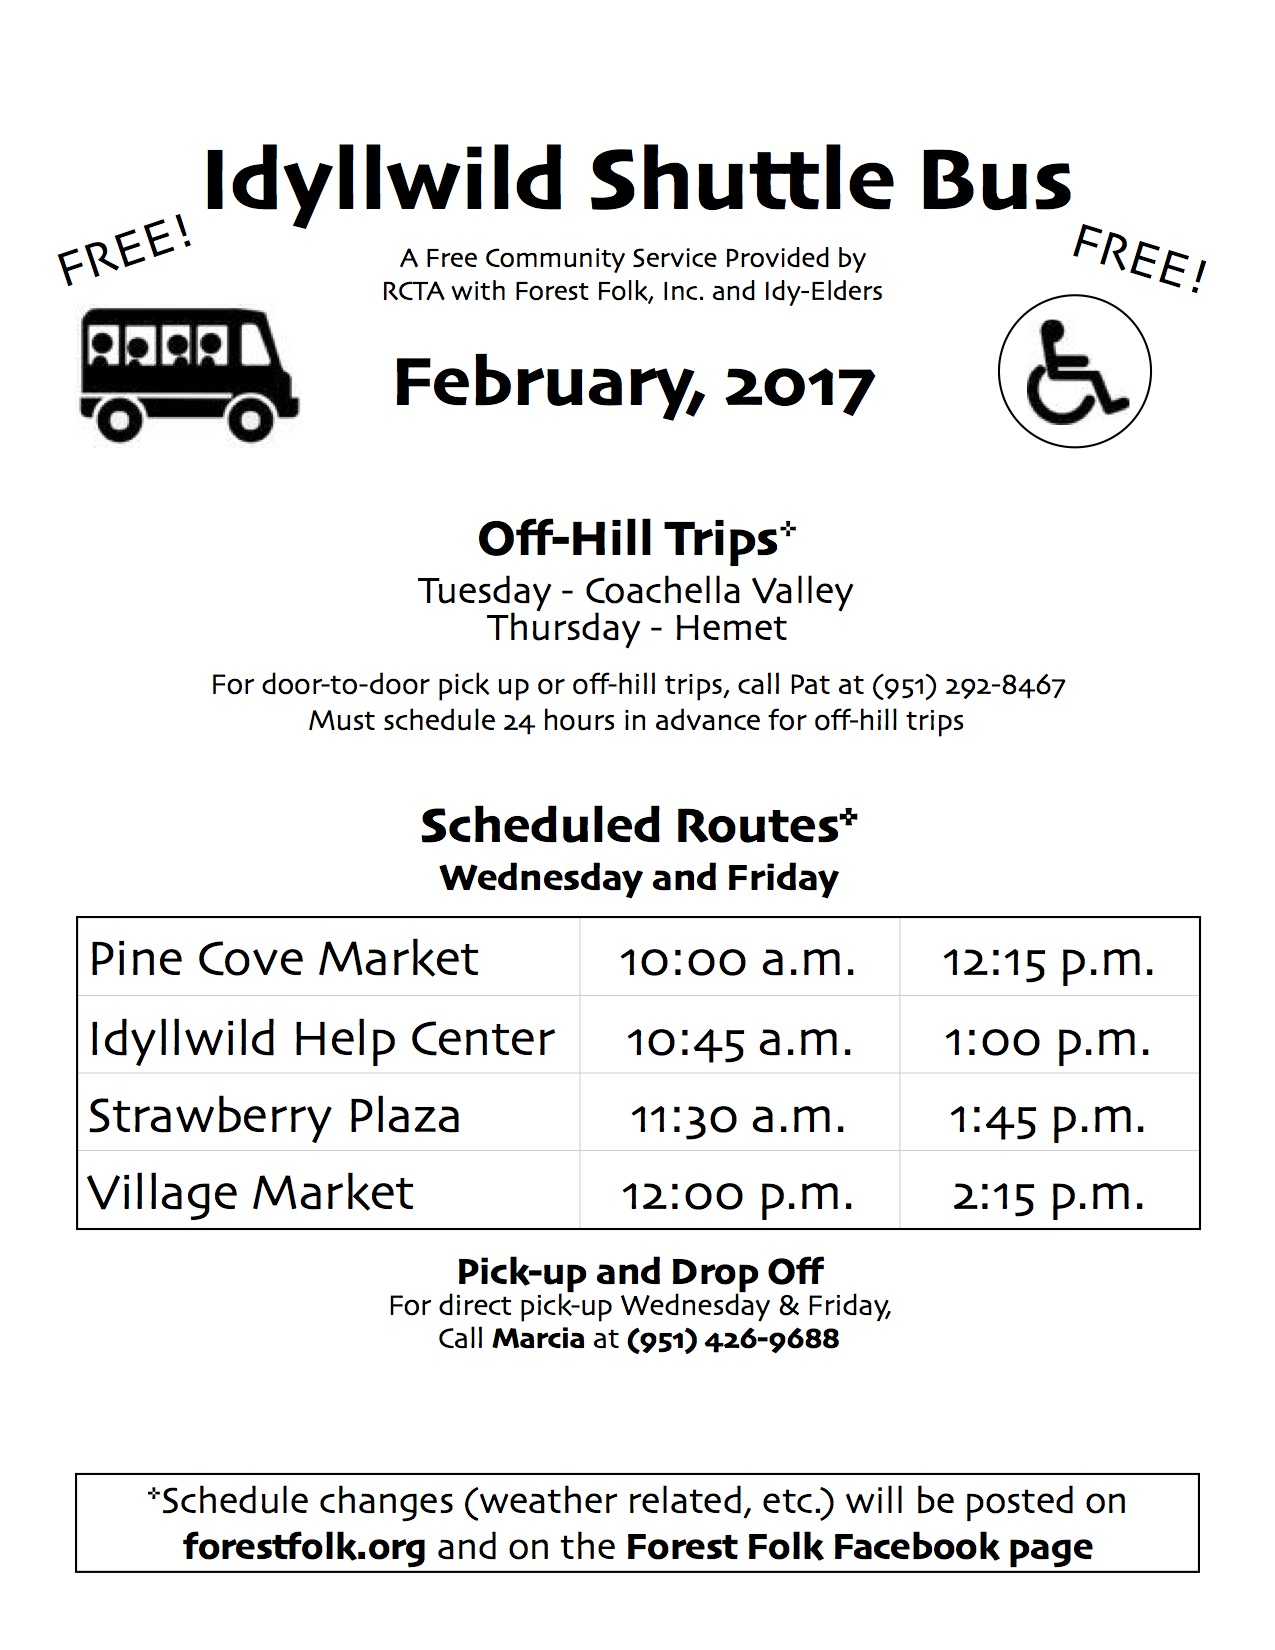 Forest Folk Bus Schedule Feb 2017